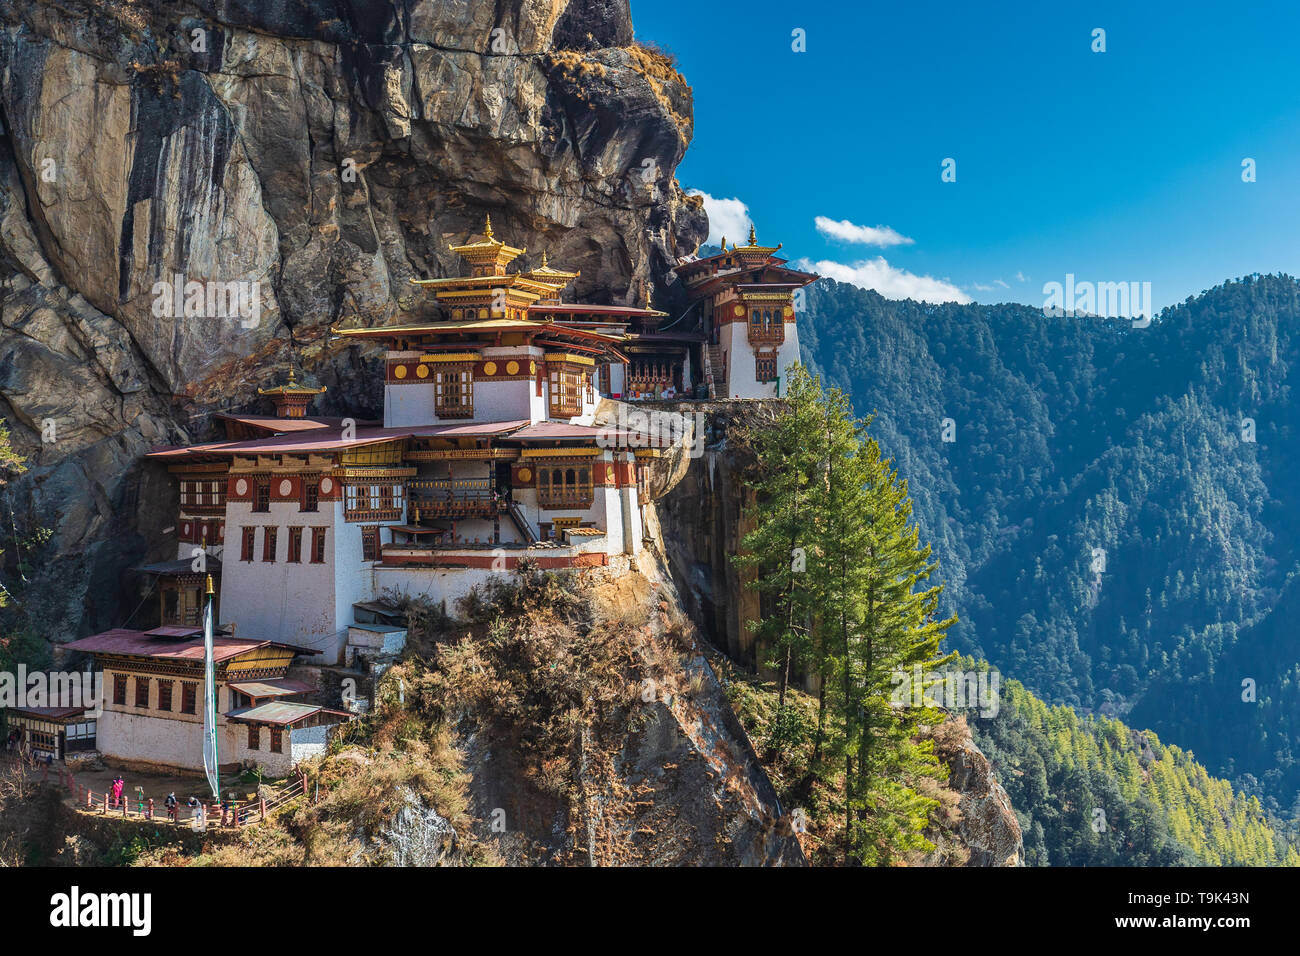 The most sacred place in Bhutan is located on the 3,000-foot high cliff of Paro valley, Bhutan. - Stock Image